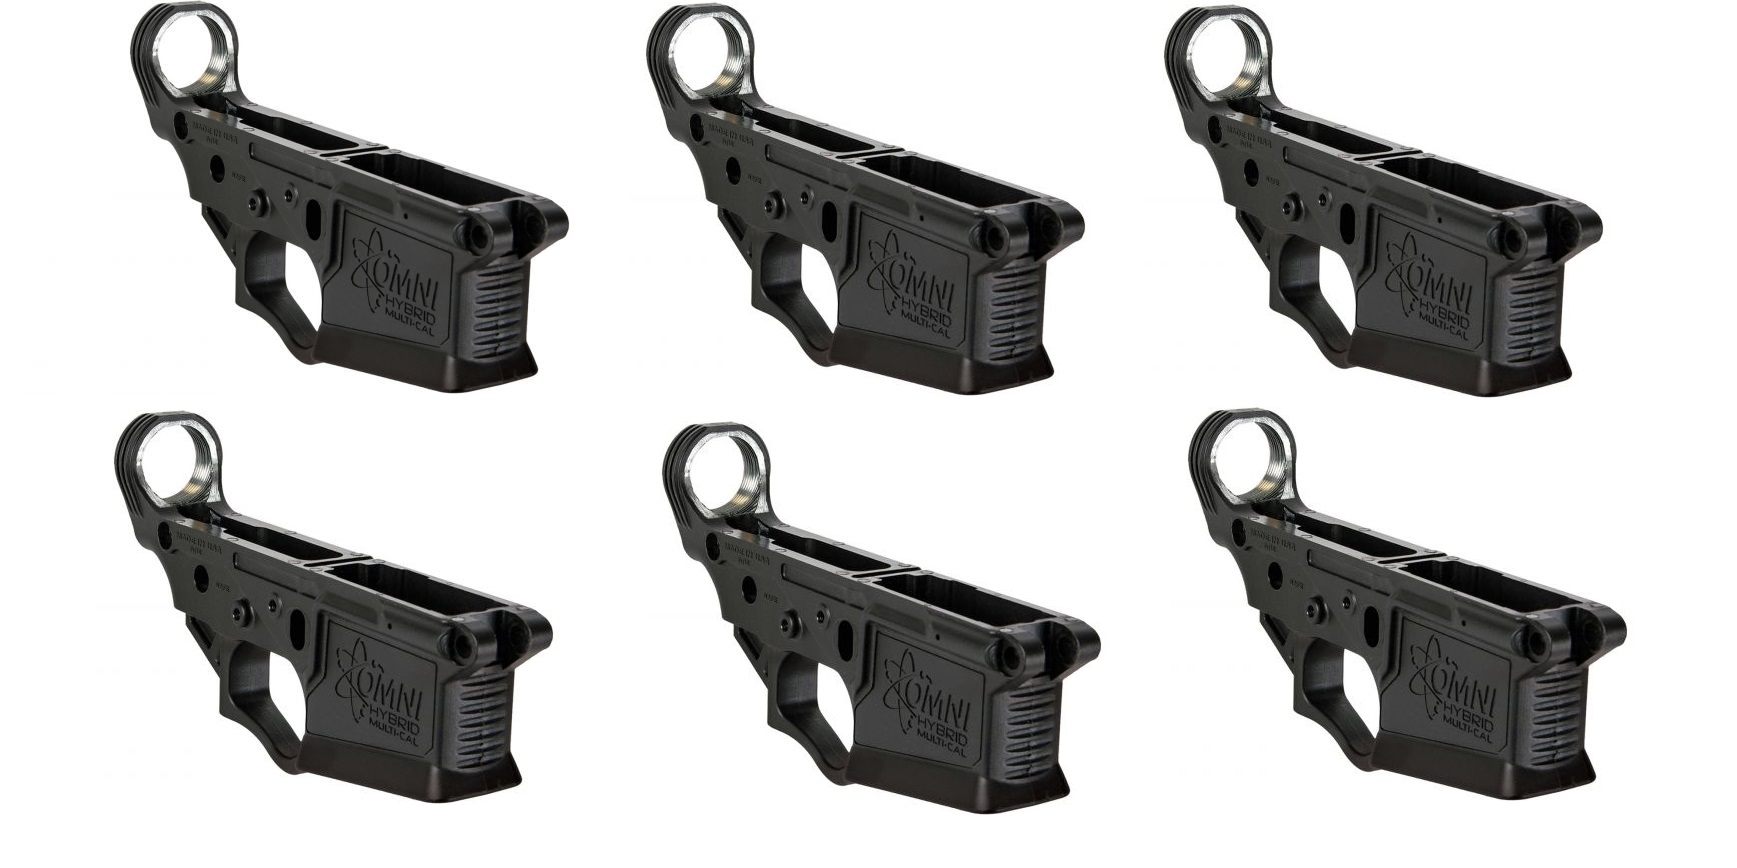 American Tactical ATI Omni Hybrid Polymer Multi Cal Stripped AR-15 Lower  Receiver 6 PACK - SALE!